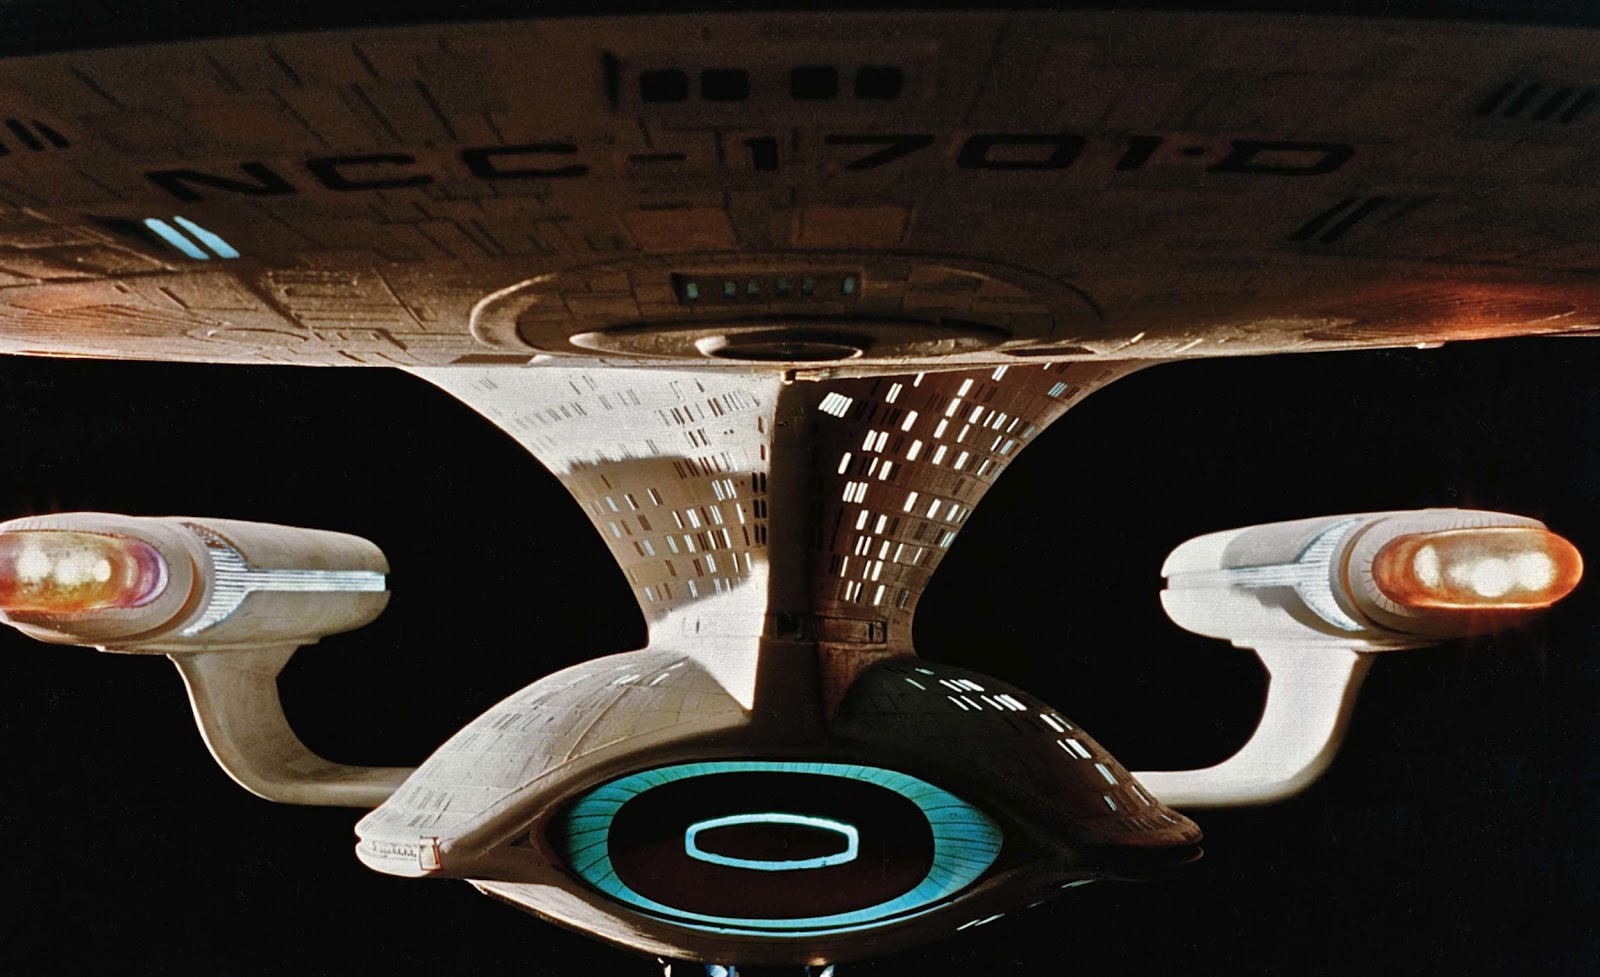 A Stunning Look At The Original Enterprised Model From The First Season